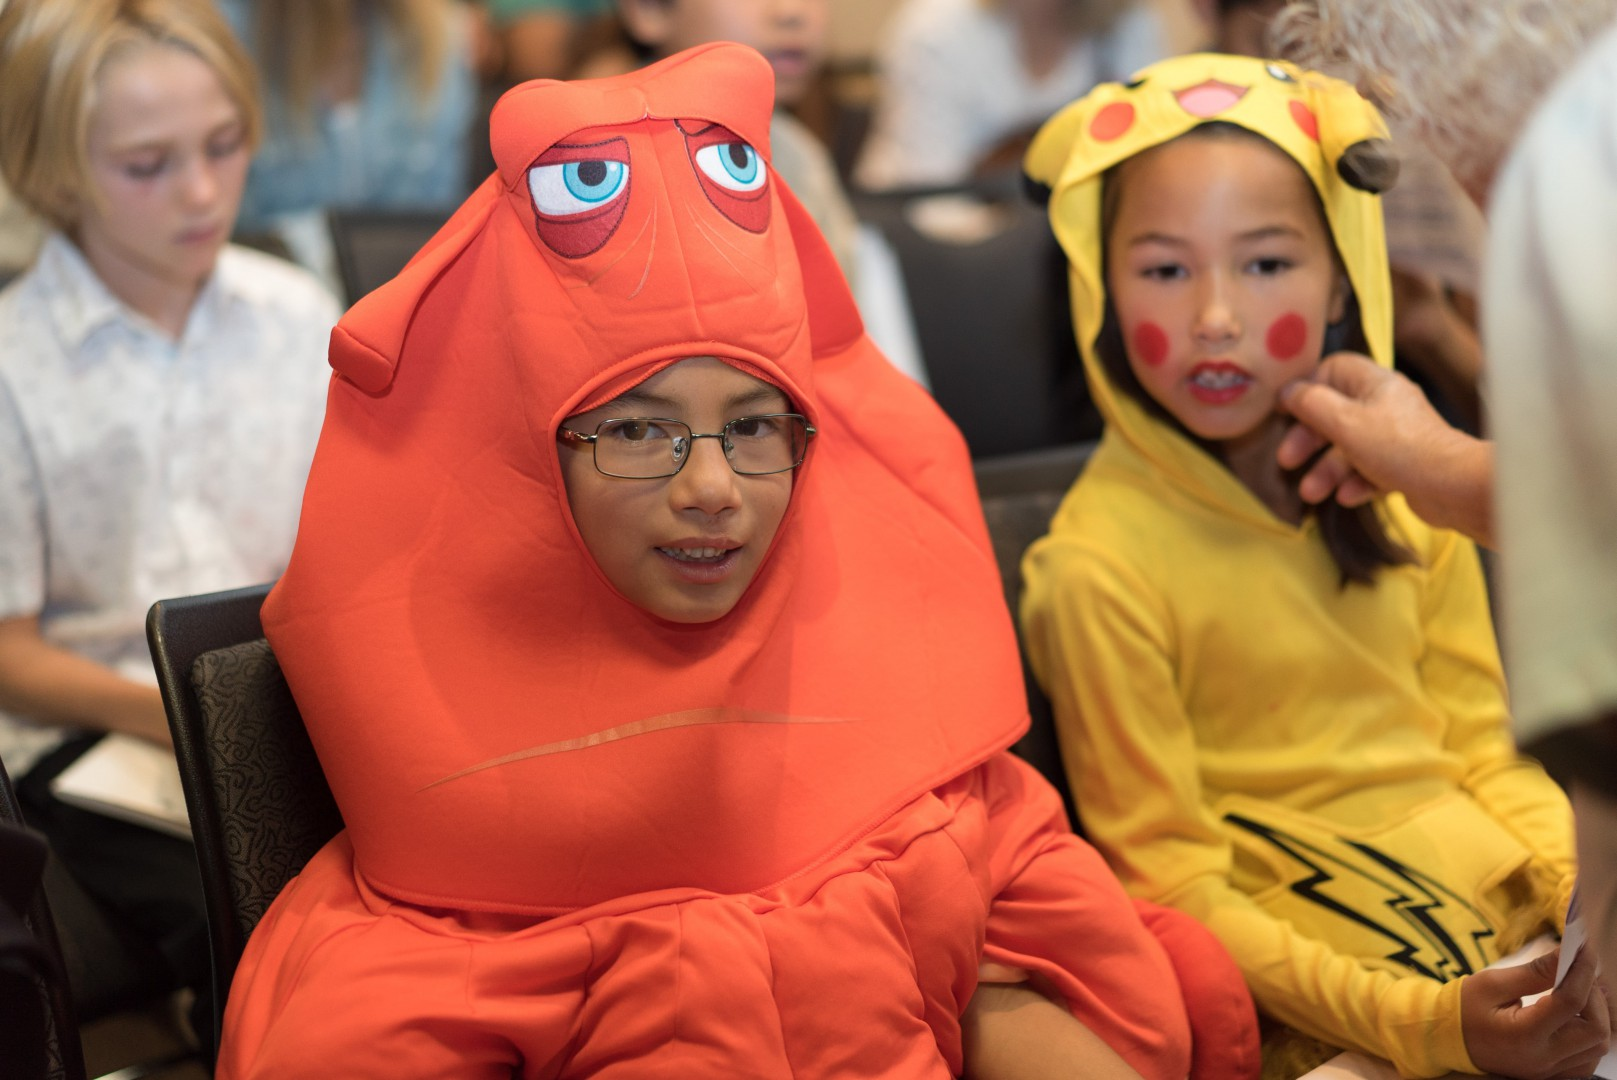 Two young girls in cartoon character costume